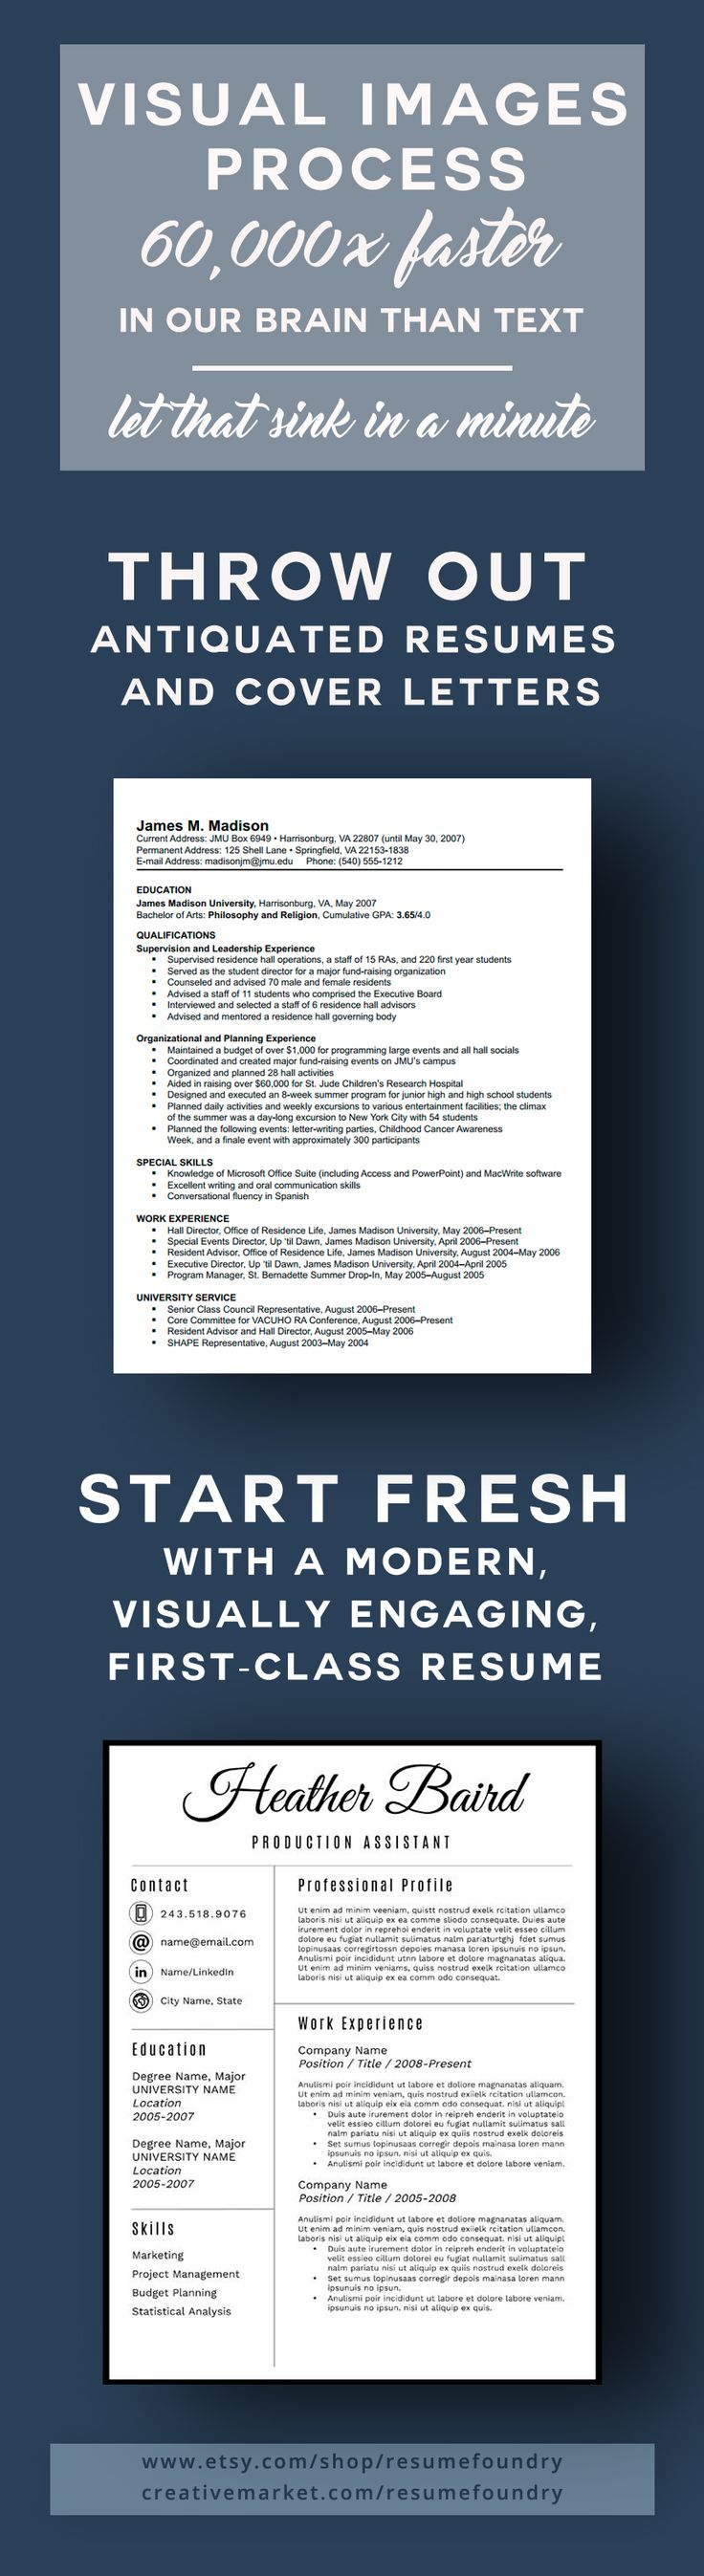 Word Cv Templates 2007%0A Take advantage of the fact that visual images process faster than text   make your resume visually engaging